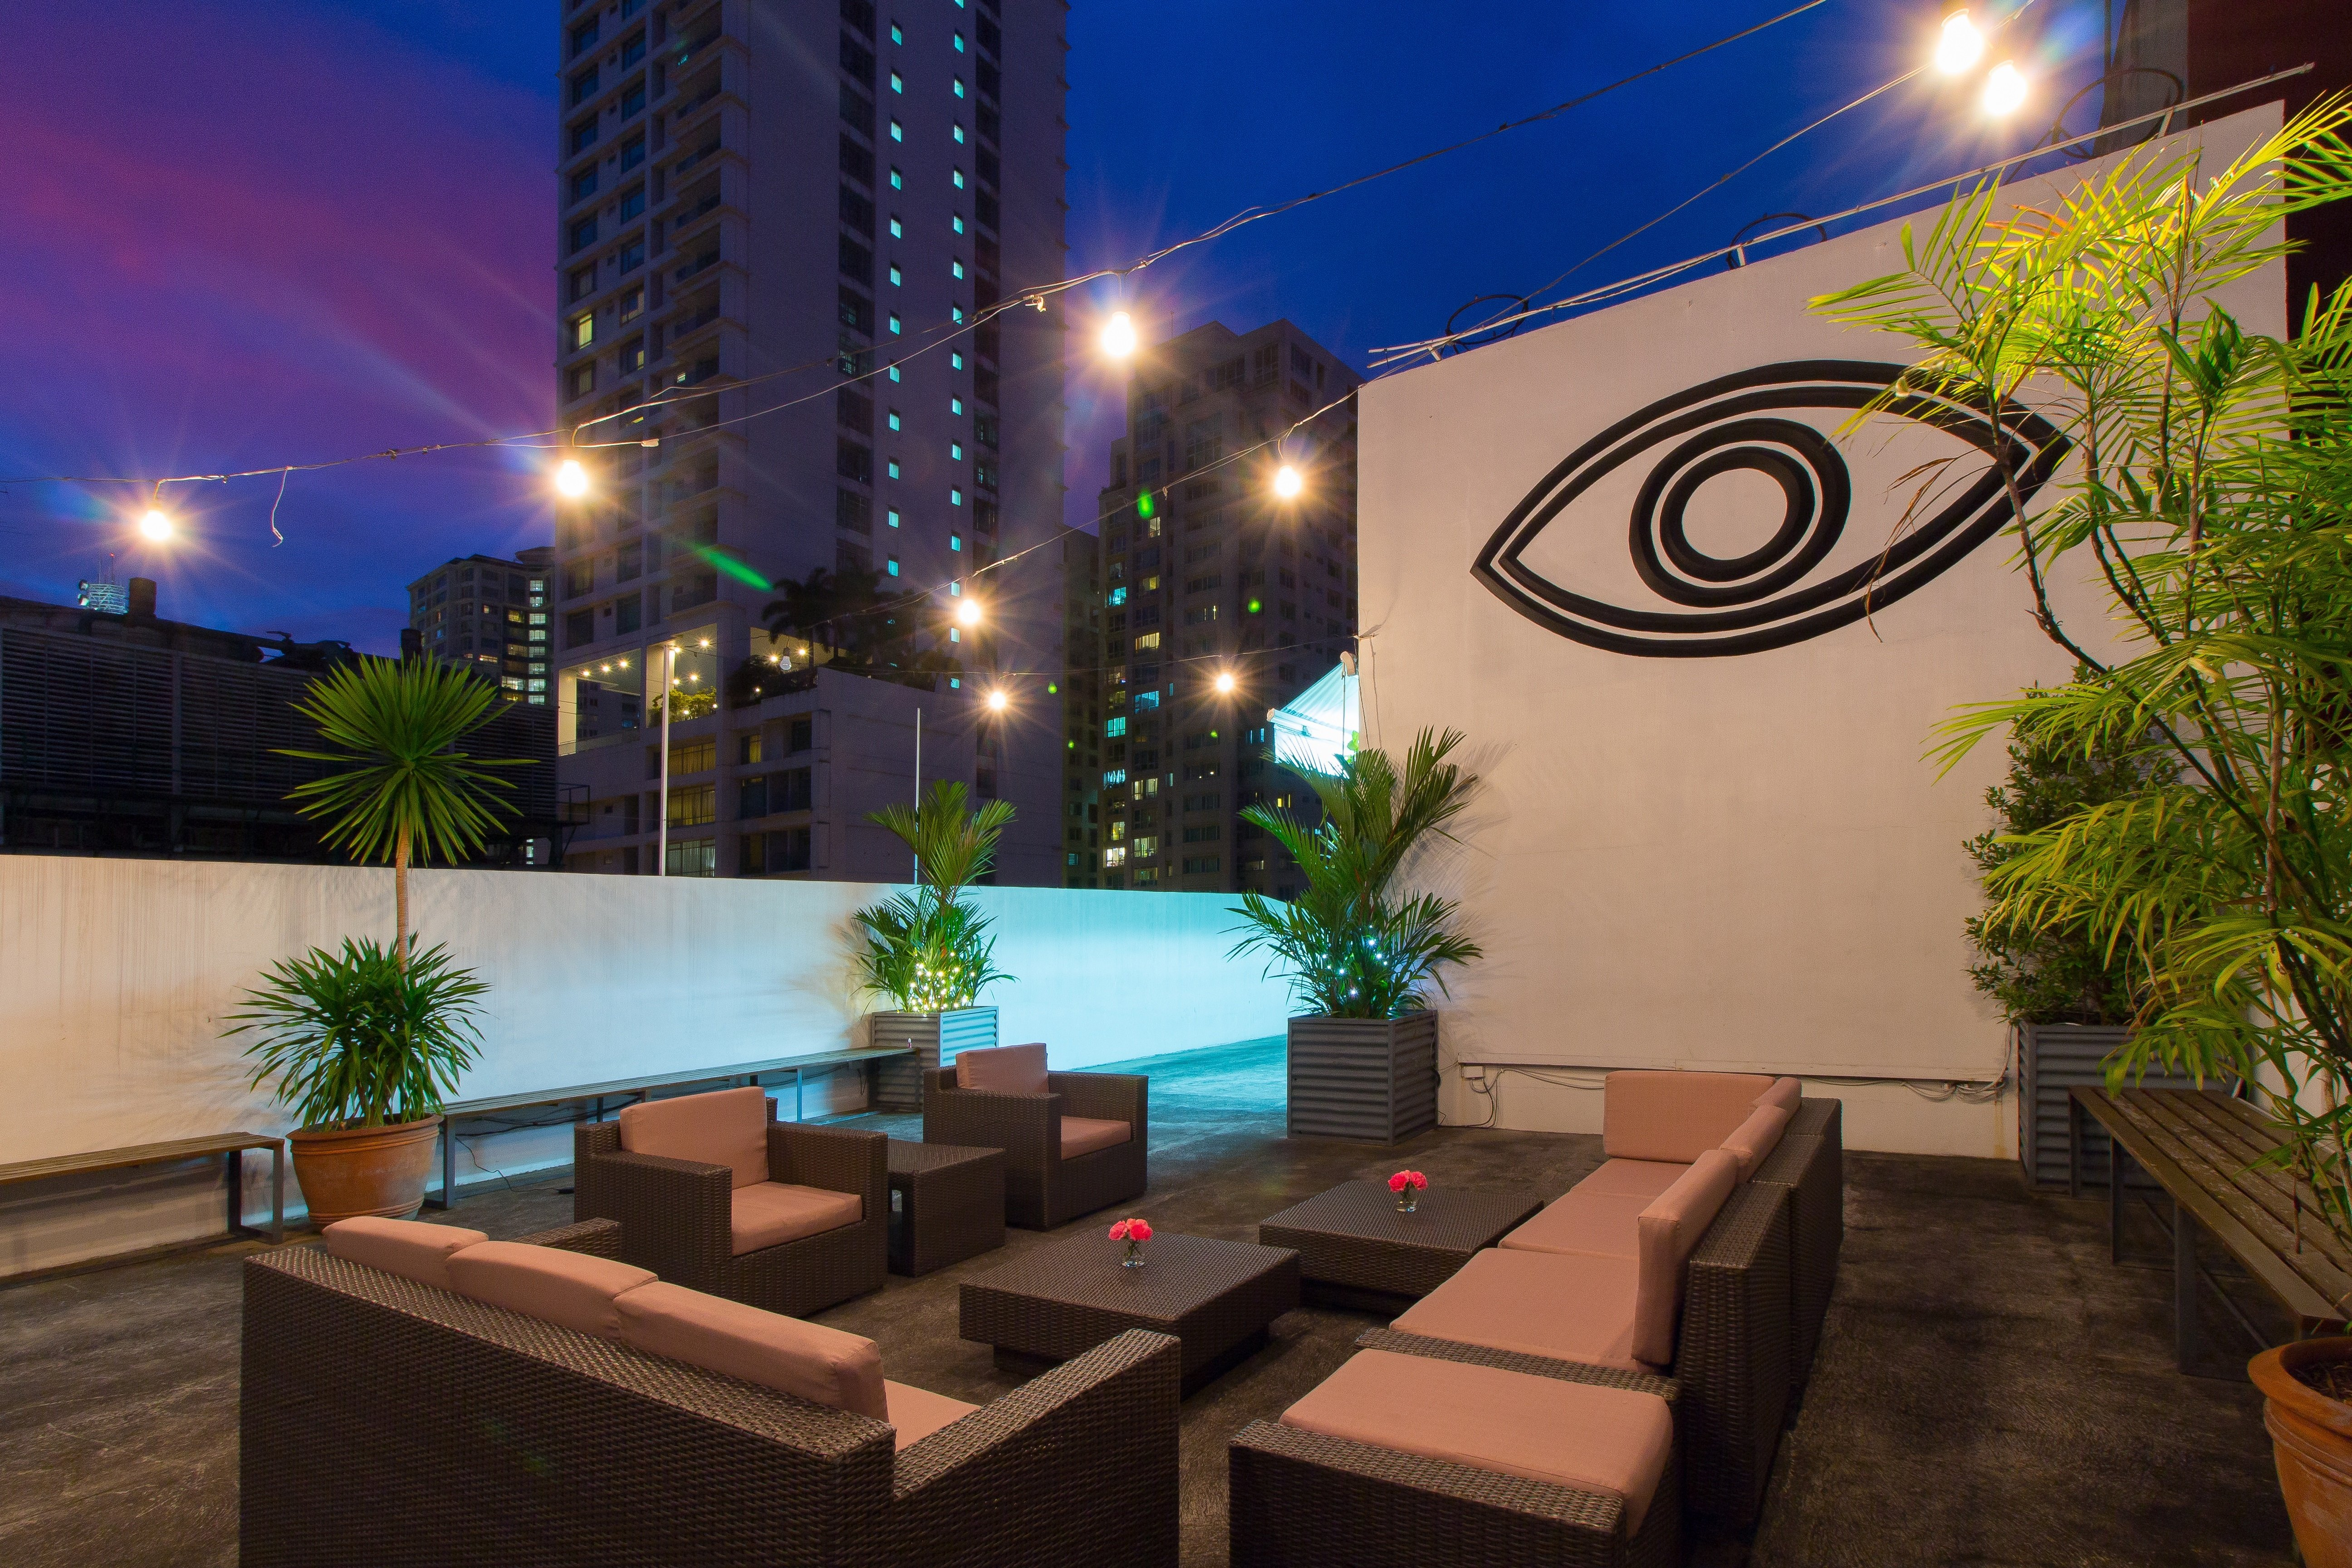 picasso hotel rooftop, manila